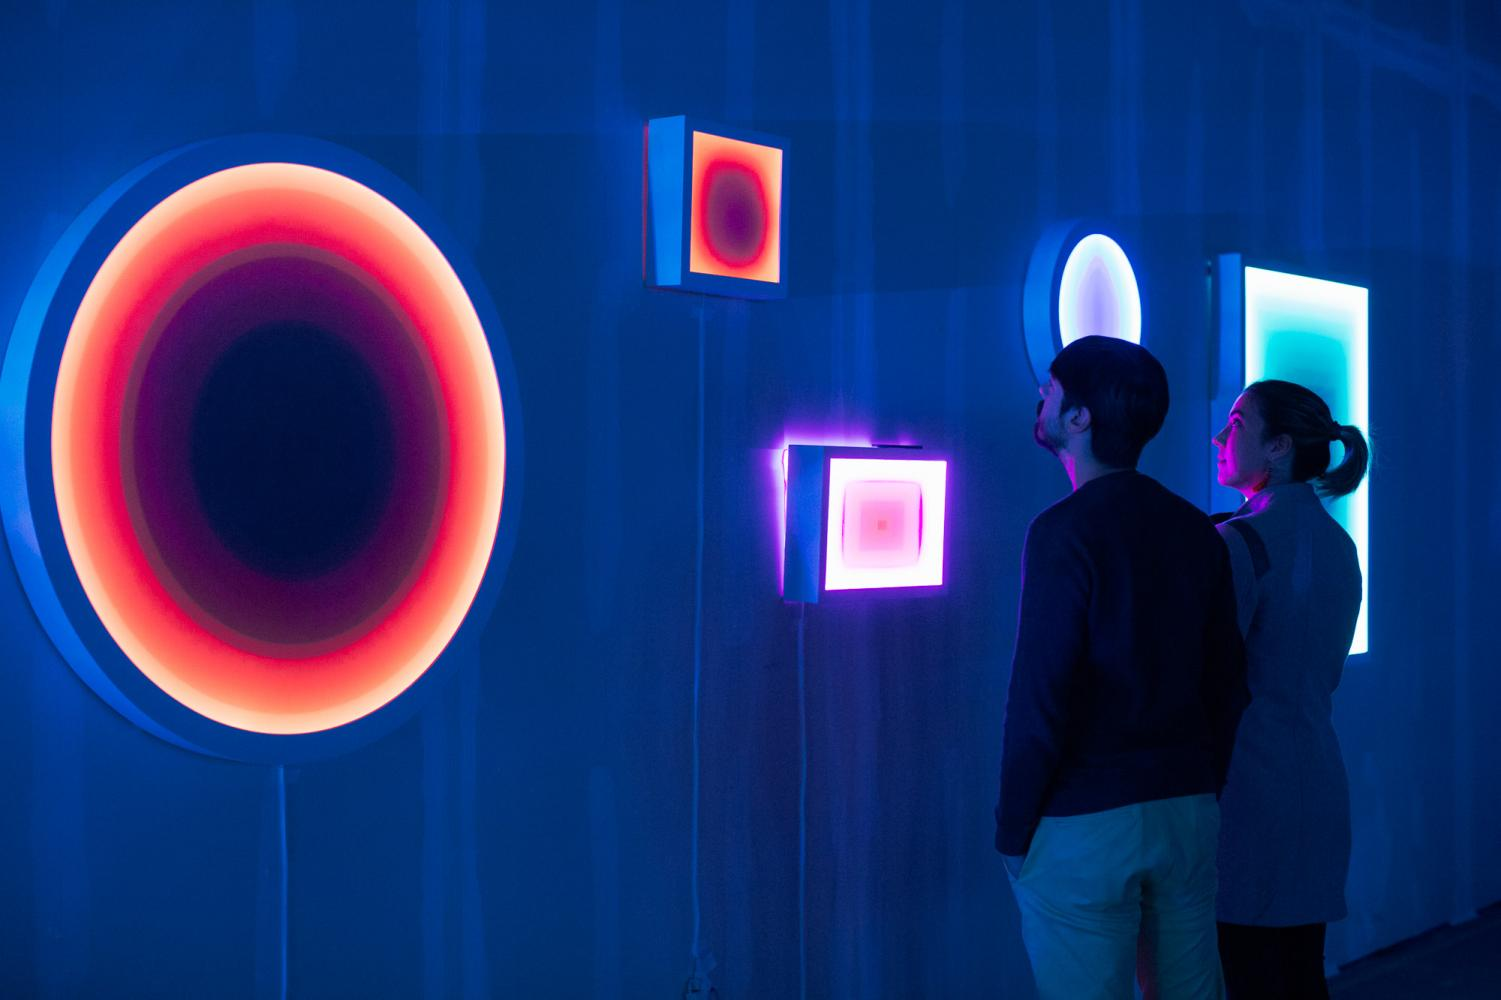 One of the works featured at last year's MOCAN x Pantone UX exhibition (Photo by Daniel Meigs).